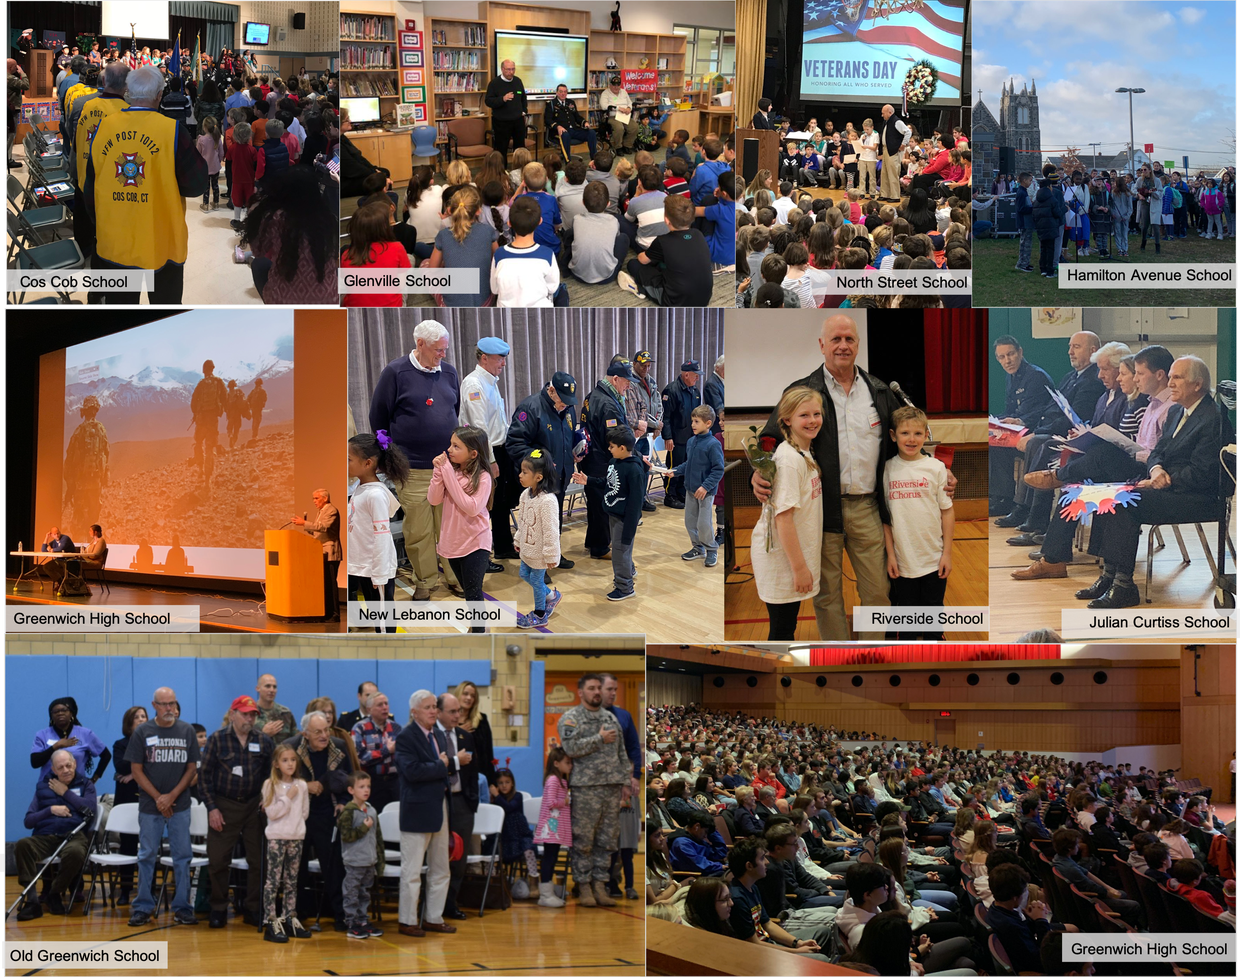 Veterans Day celebrations across many of our schools